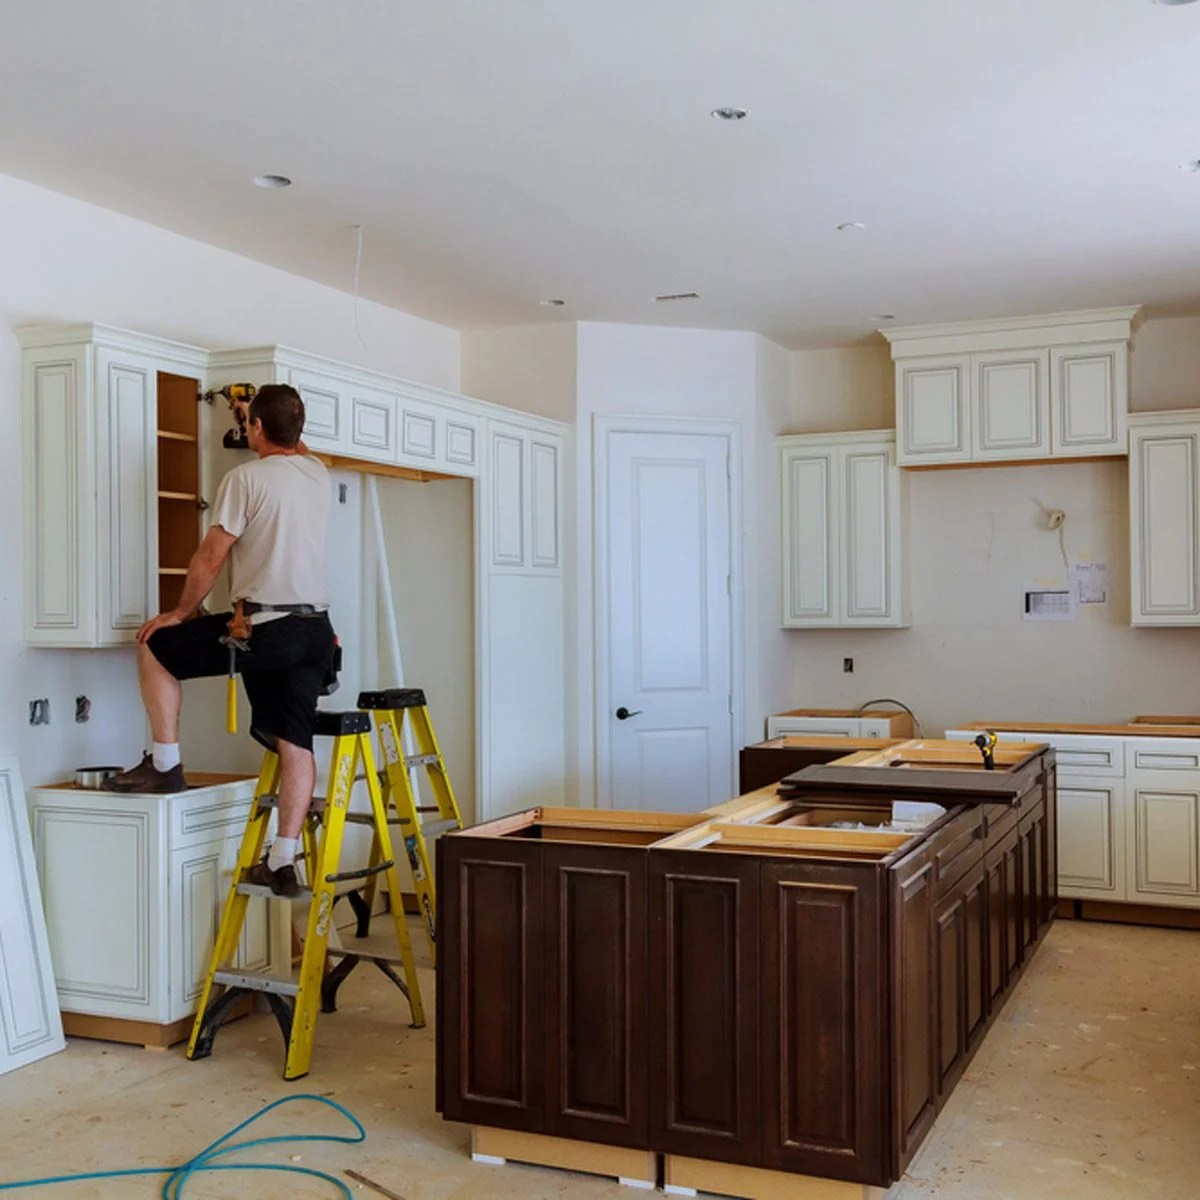 Kitchen Renovation 10 Things You Should Never Do During A Kitchen Renovation